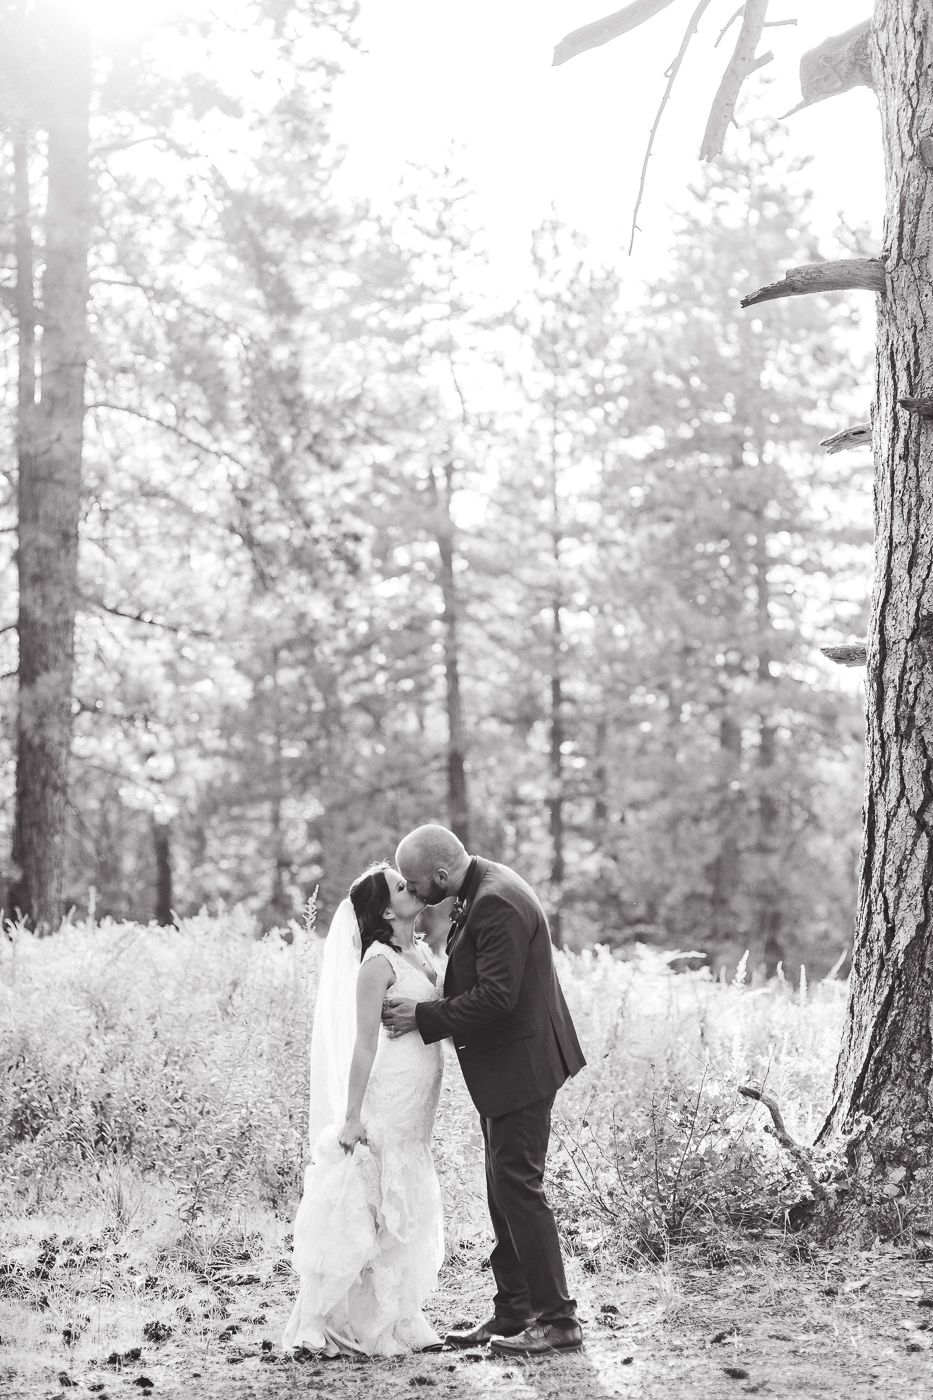 Intimate Camp around Meadow California by Megan Lee Photography